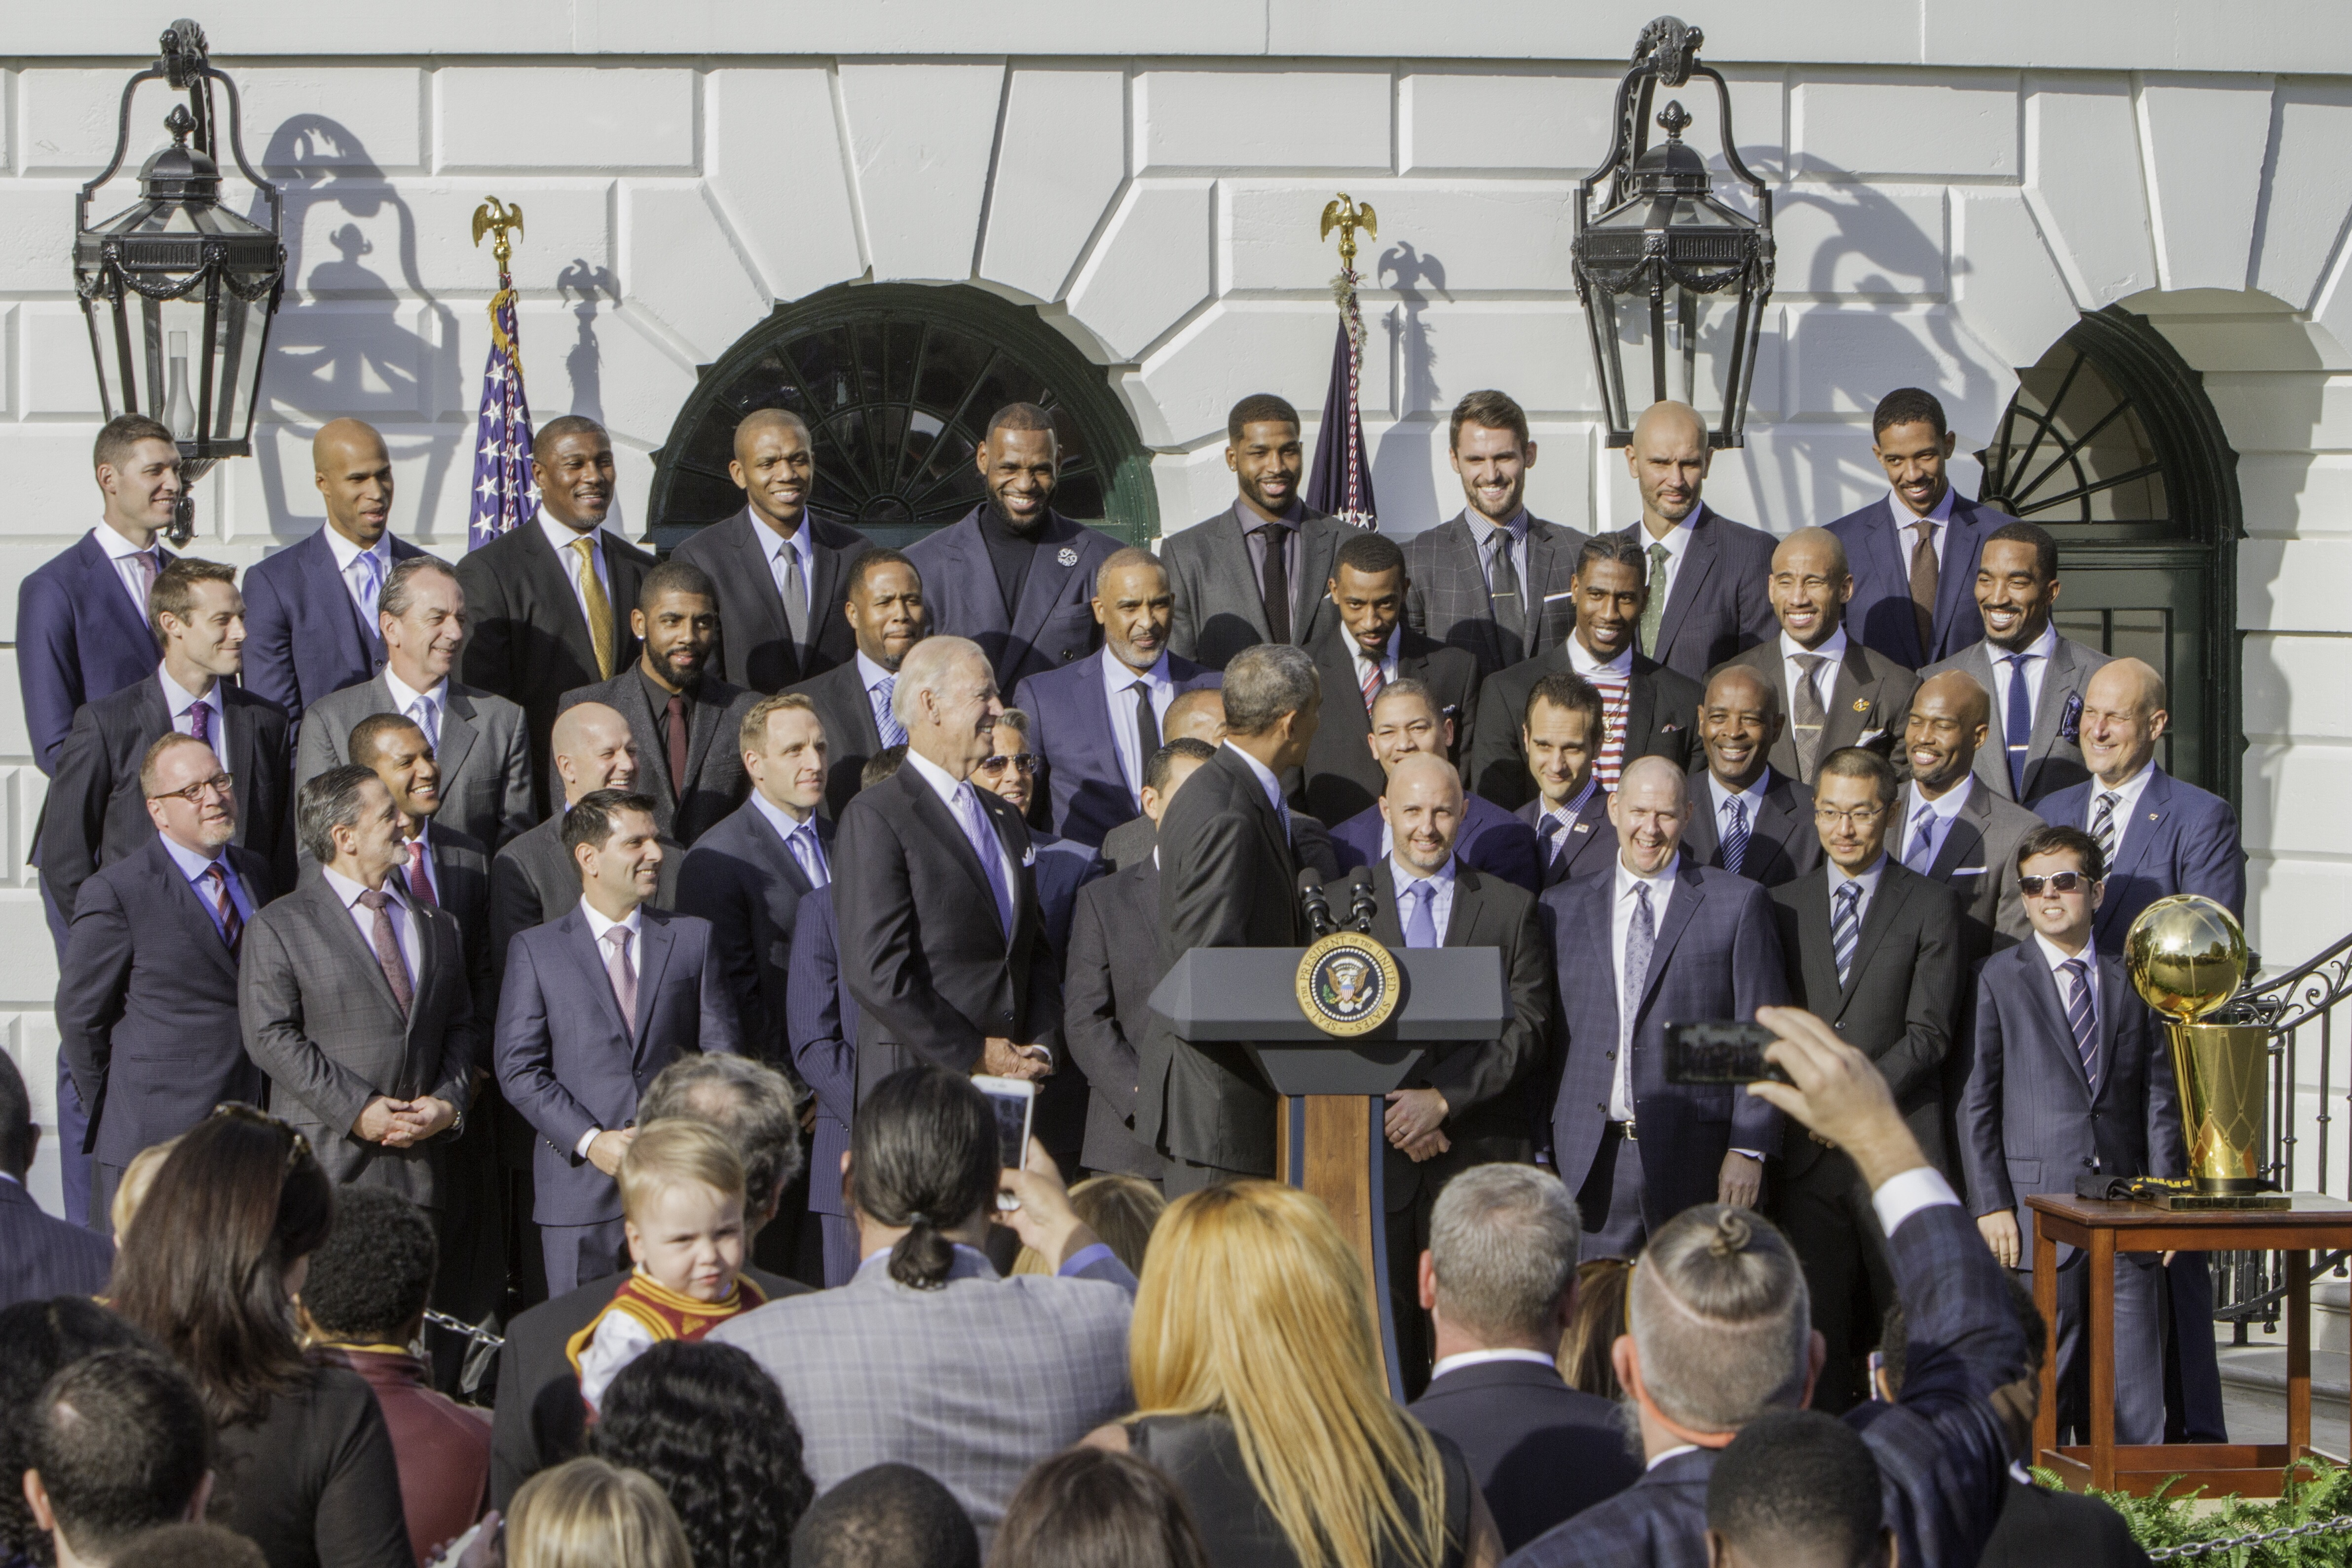 #PresidentObama, ClevelandCavaliers, WhiteHouse, GeorgioSabino, GS3Photography